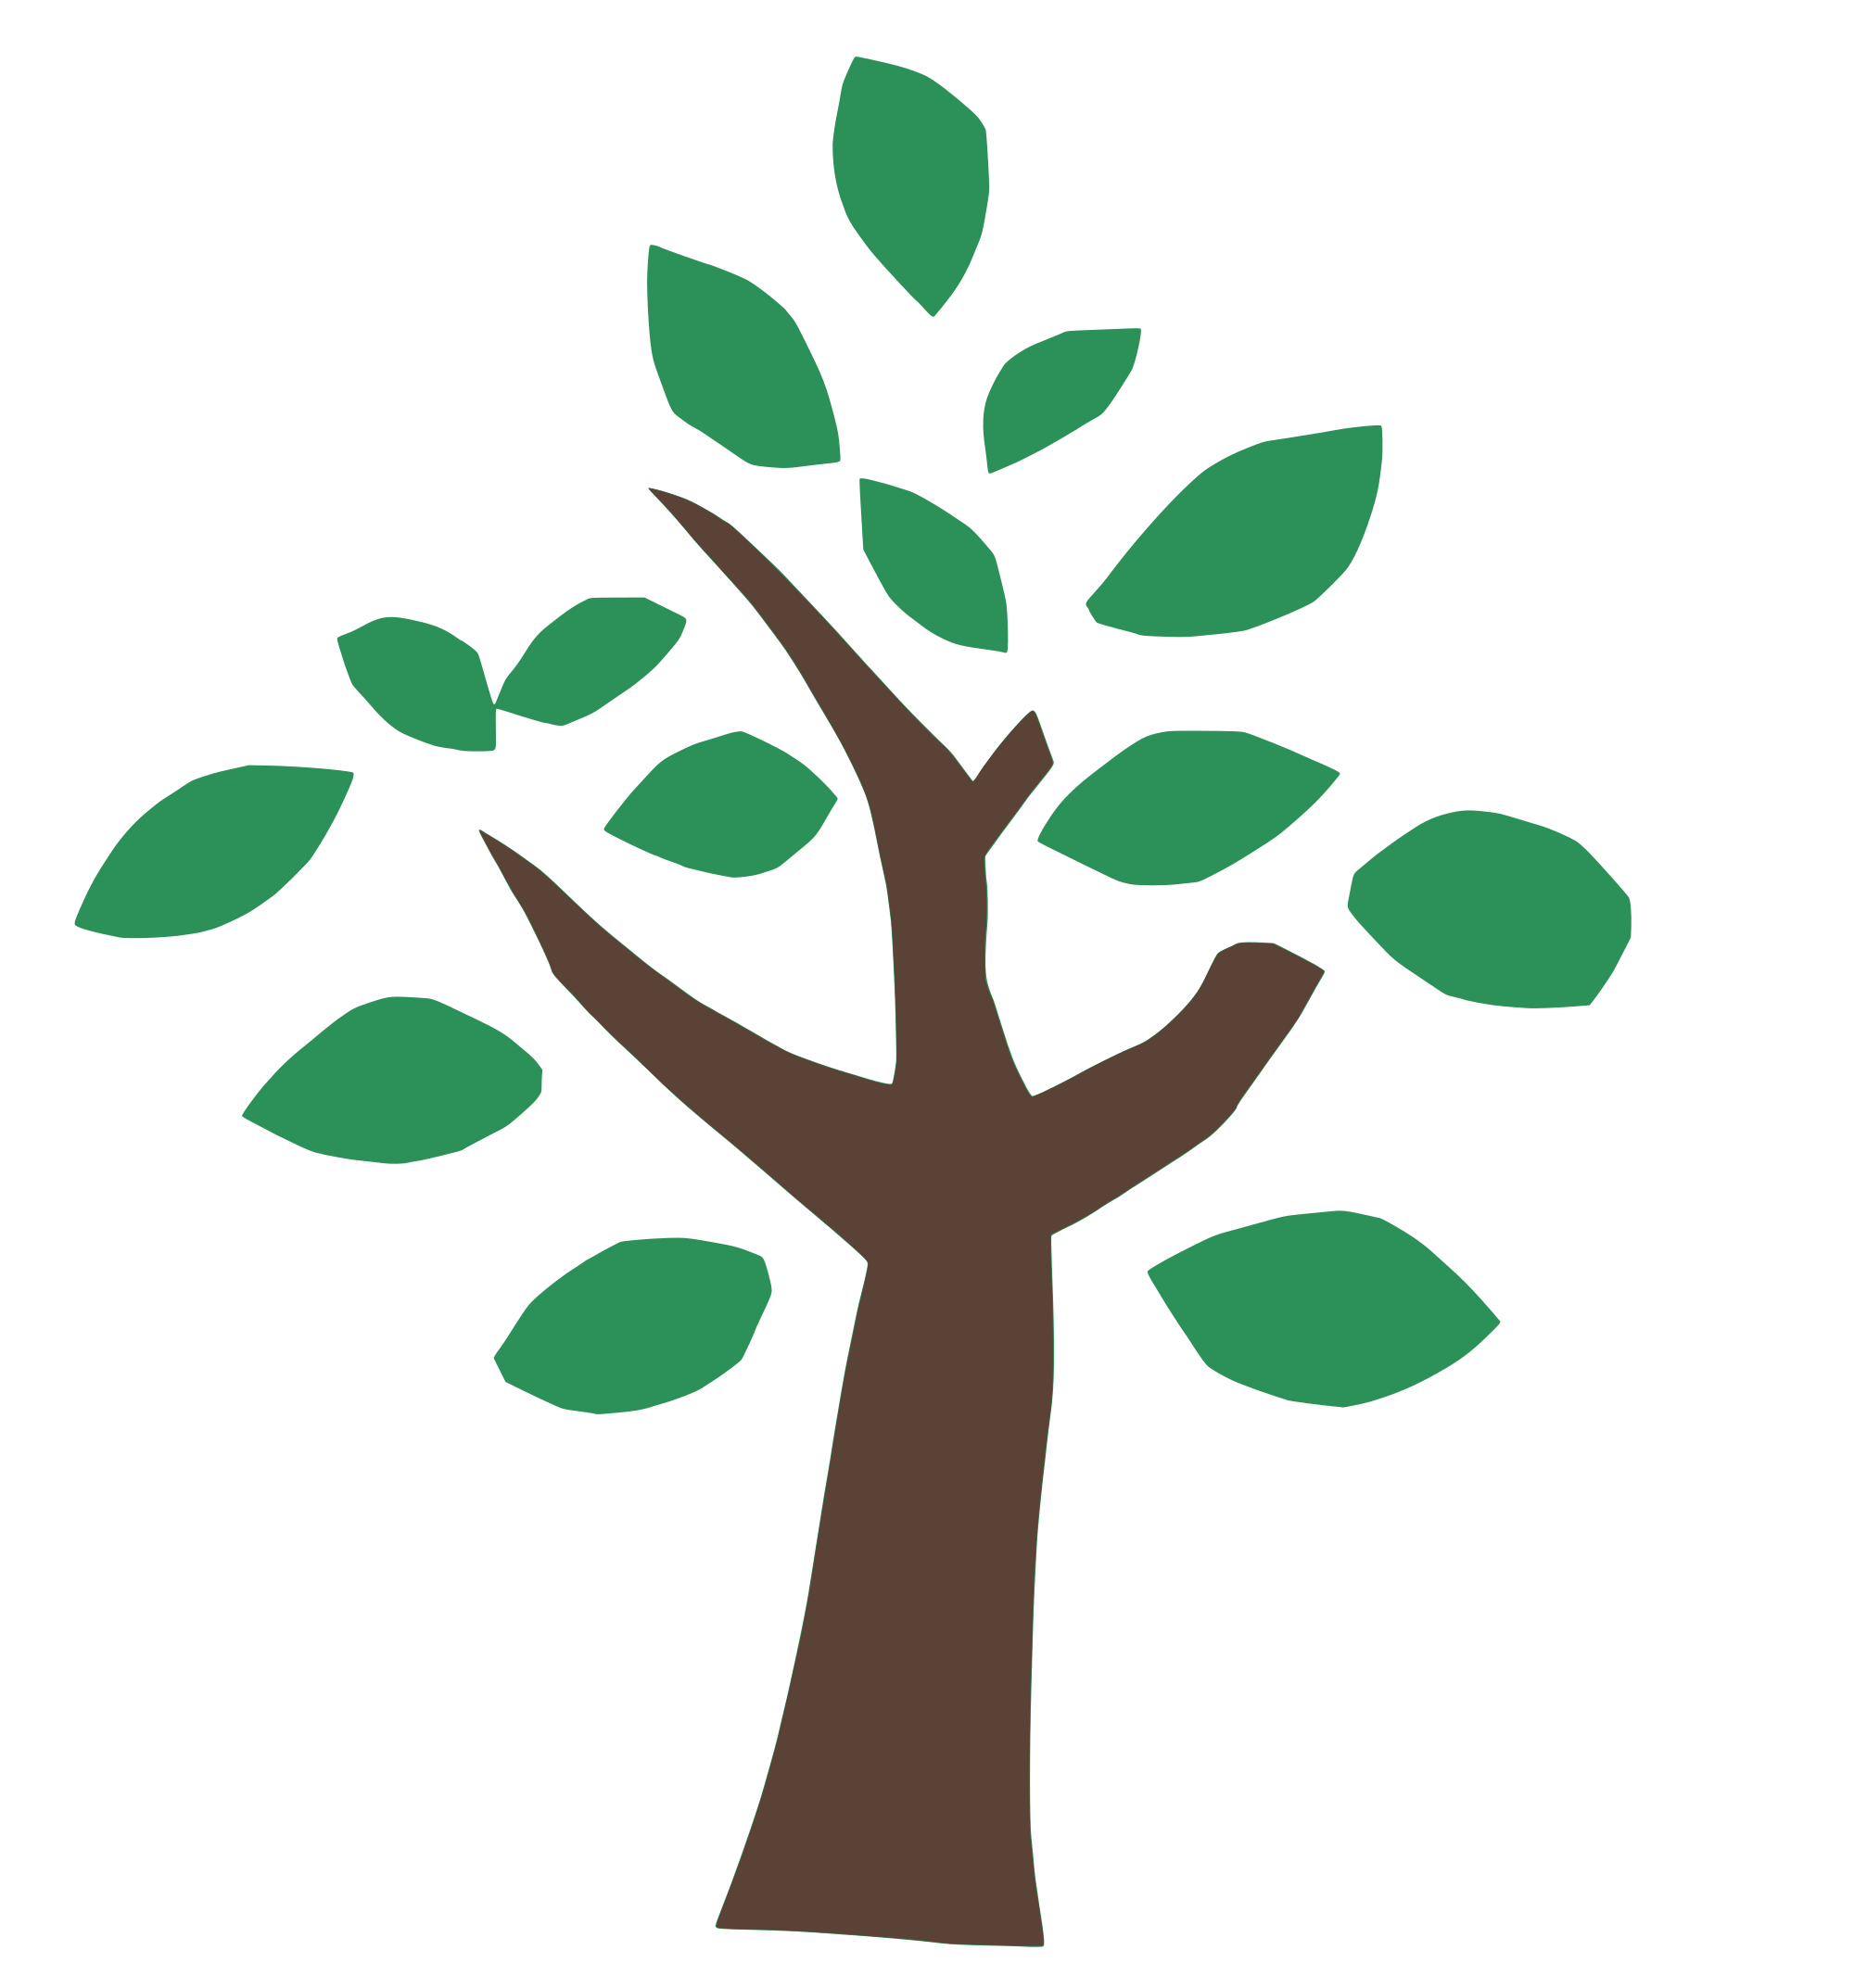 green tree icon png